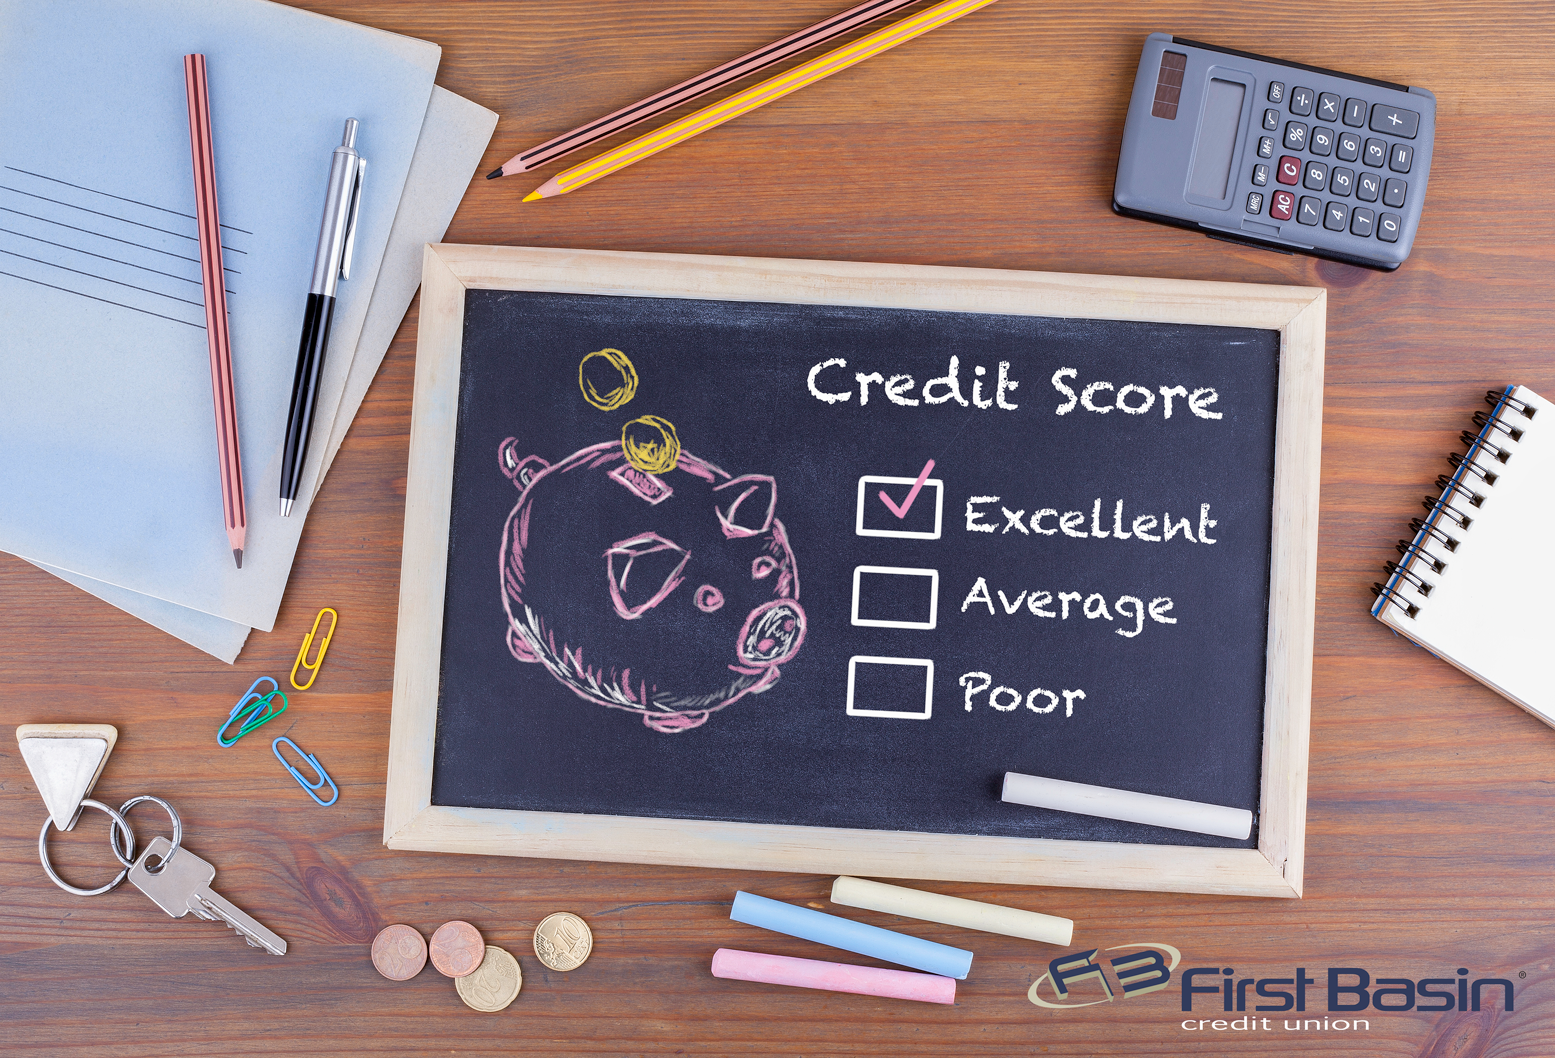 Superhero Finances 101: Credit Reports and Credit Scores